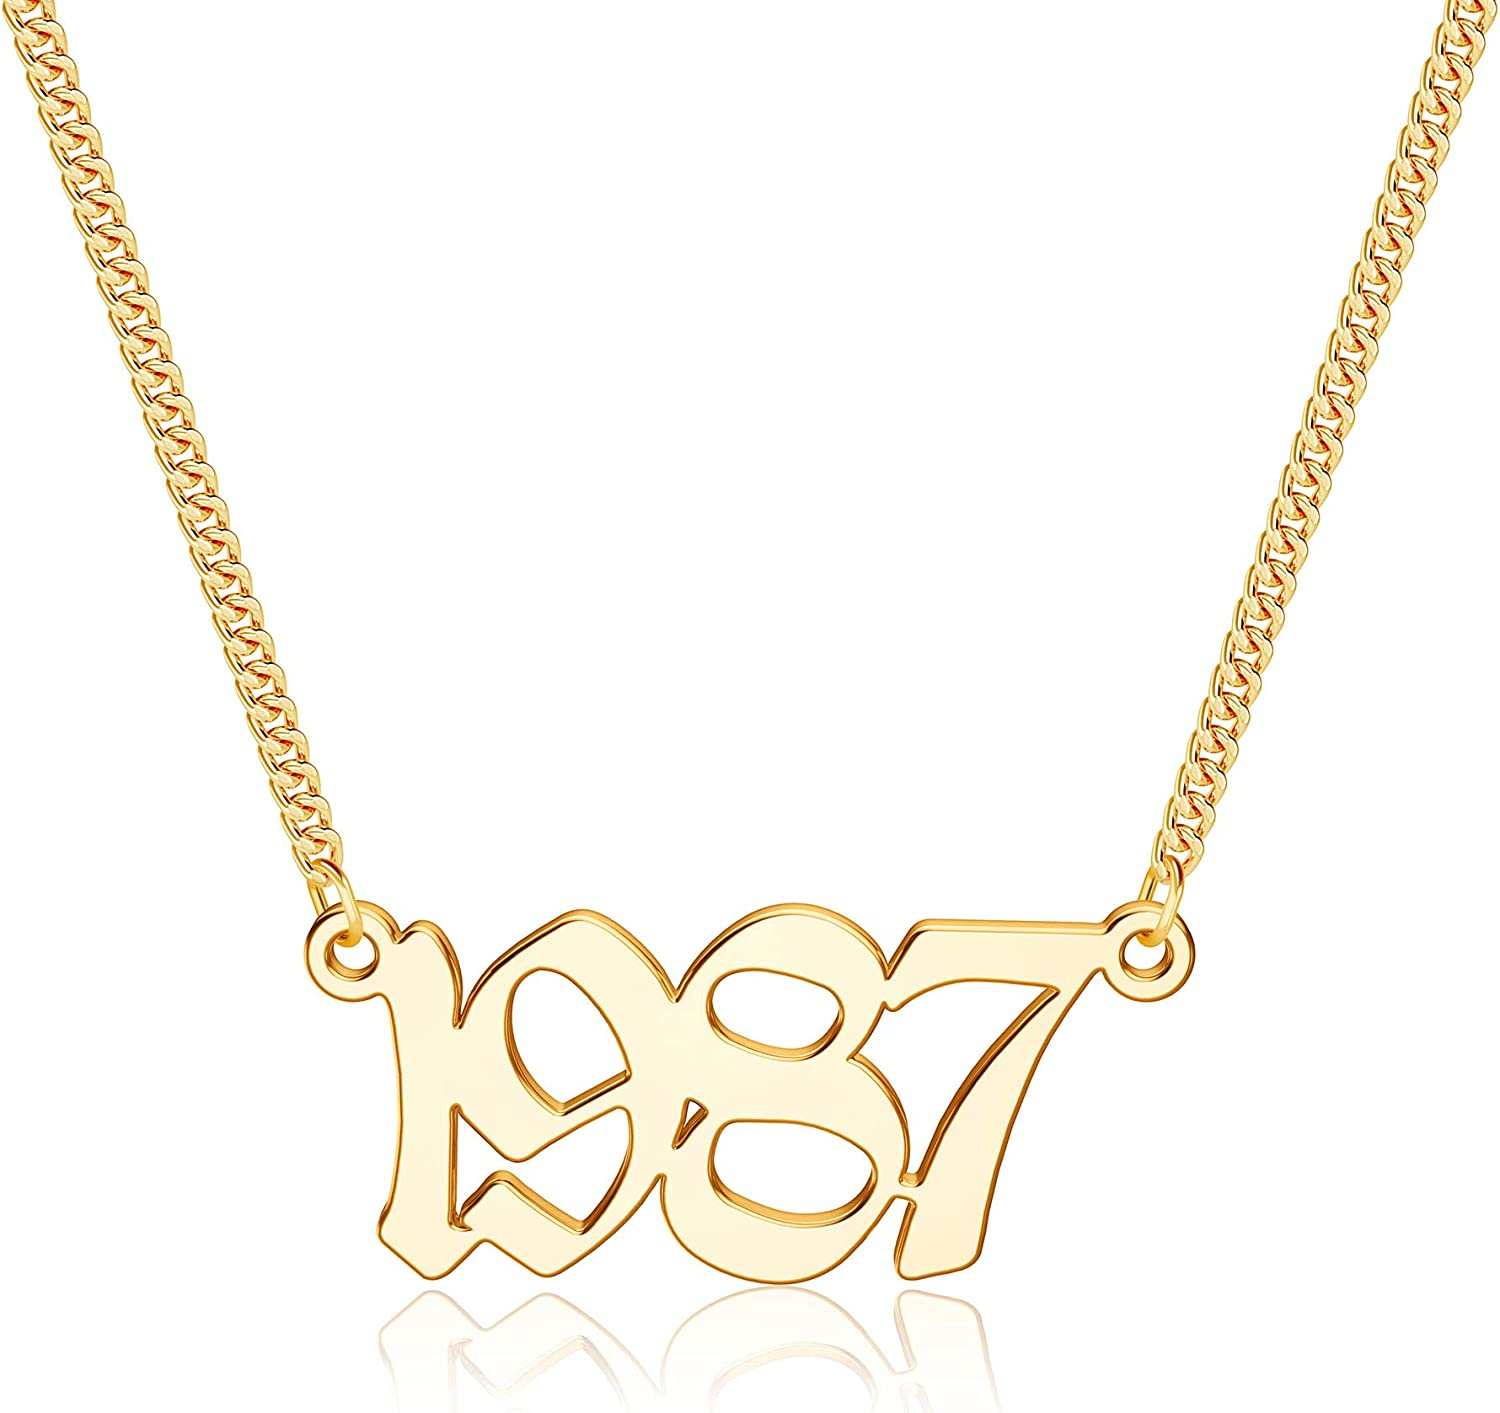 IEFSHINY Birth Year Necklace for Women, 18K Gold Plated Birth Year Number Pendant Necklace Jewelry Gifts for Women Birthday Anniversary, 1970-2021